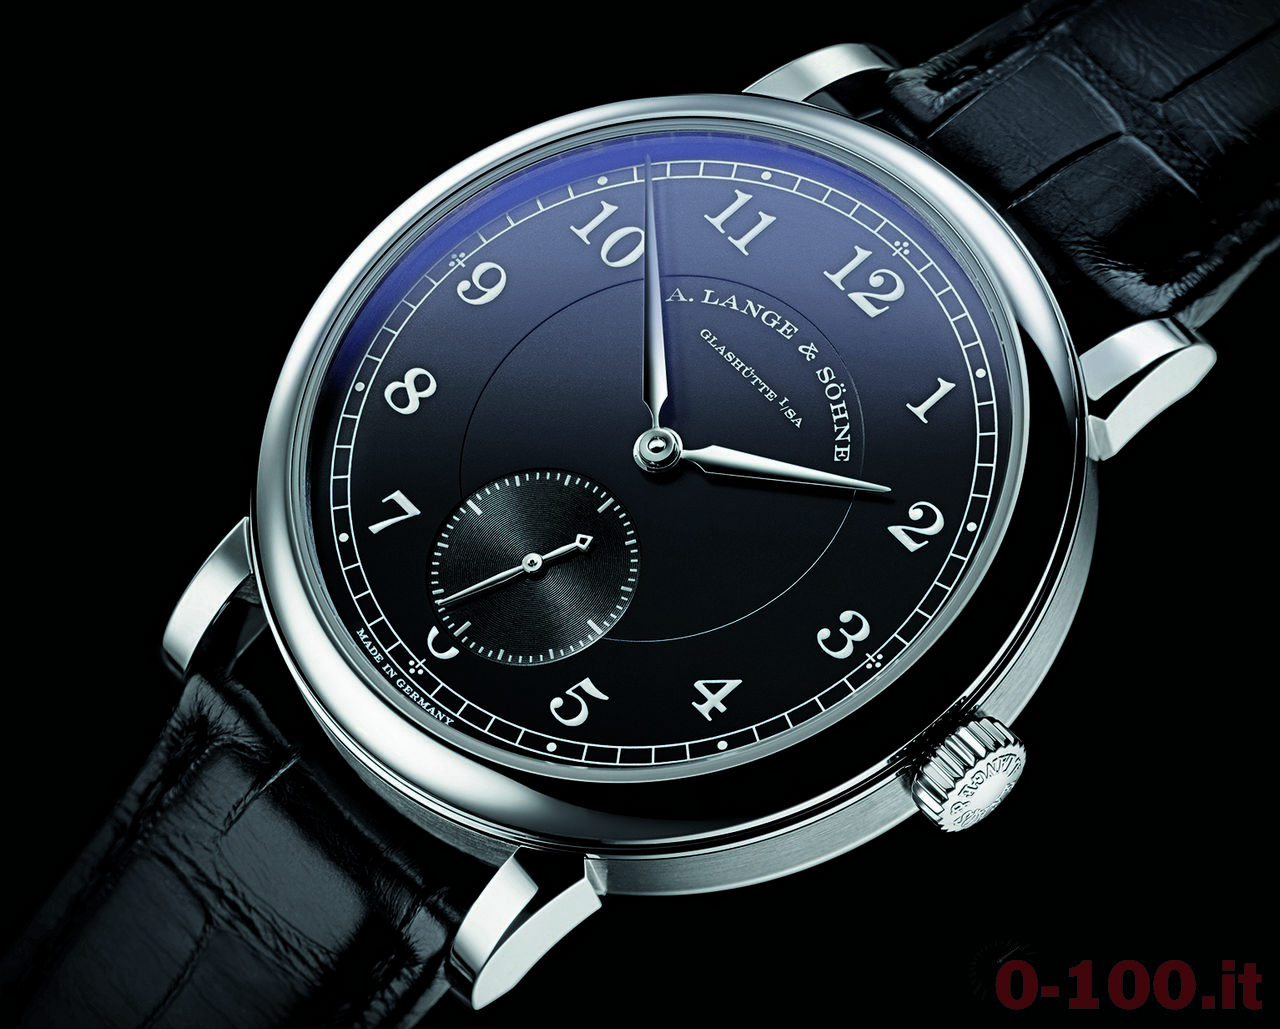 a-lange-sohne-1815-200th-anniversary-f-a-lange-limited-edition_0-100_1